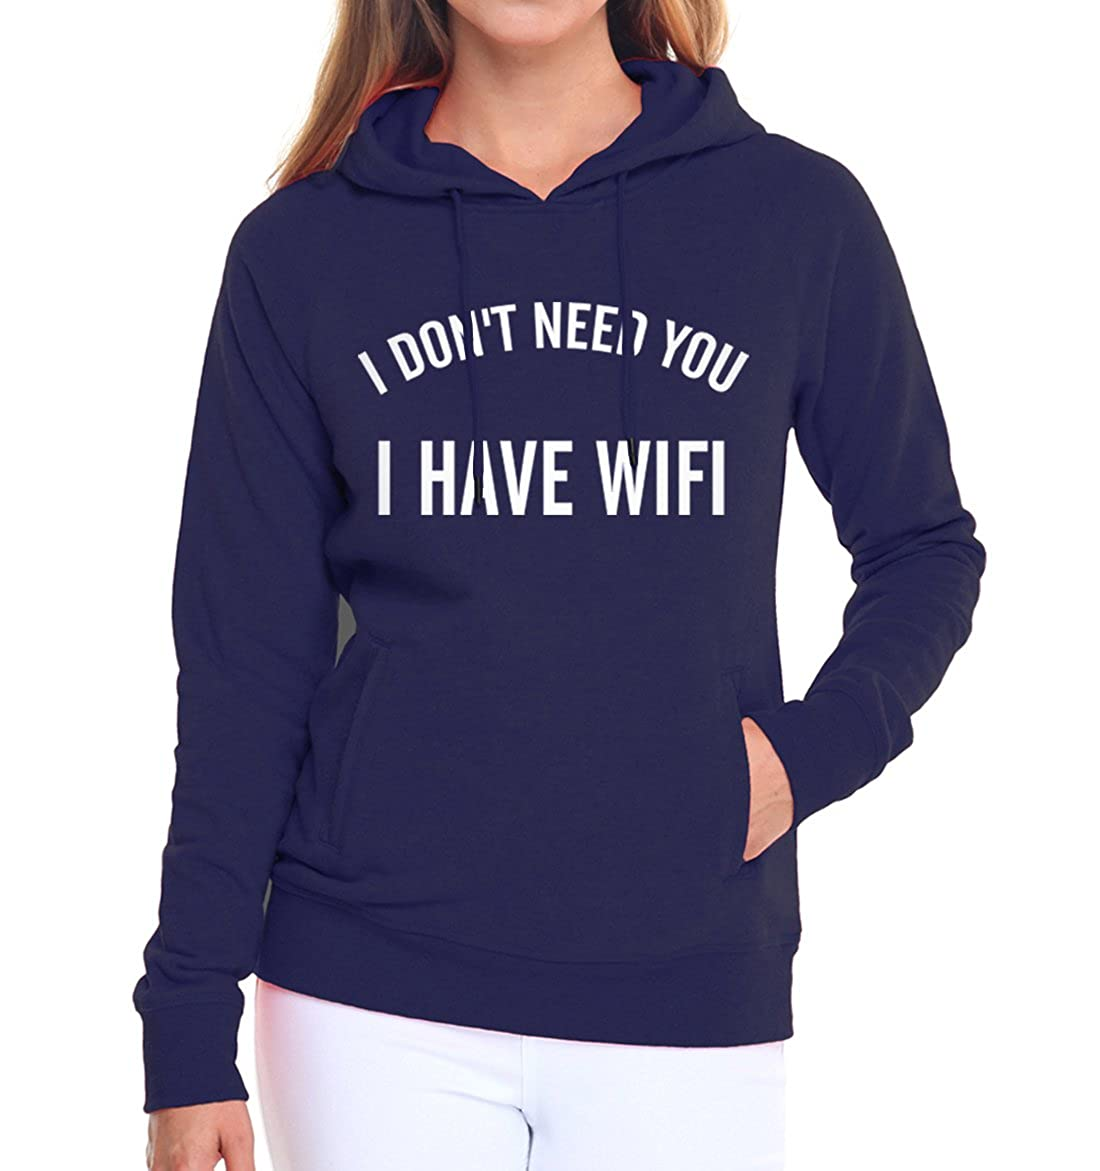 Minlovely Pretty female harajuku hoodies sweatshirt Letter Print pullovers NEW women casual fleece brand tracksuits